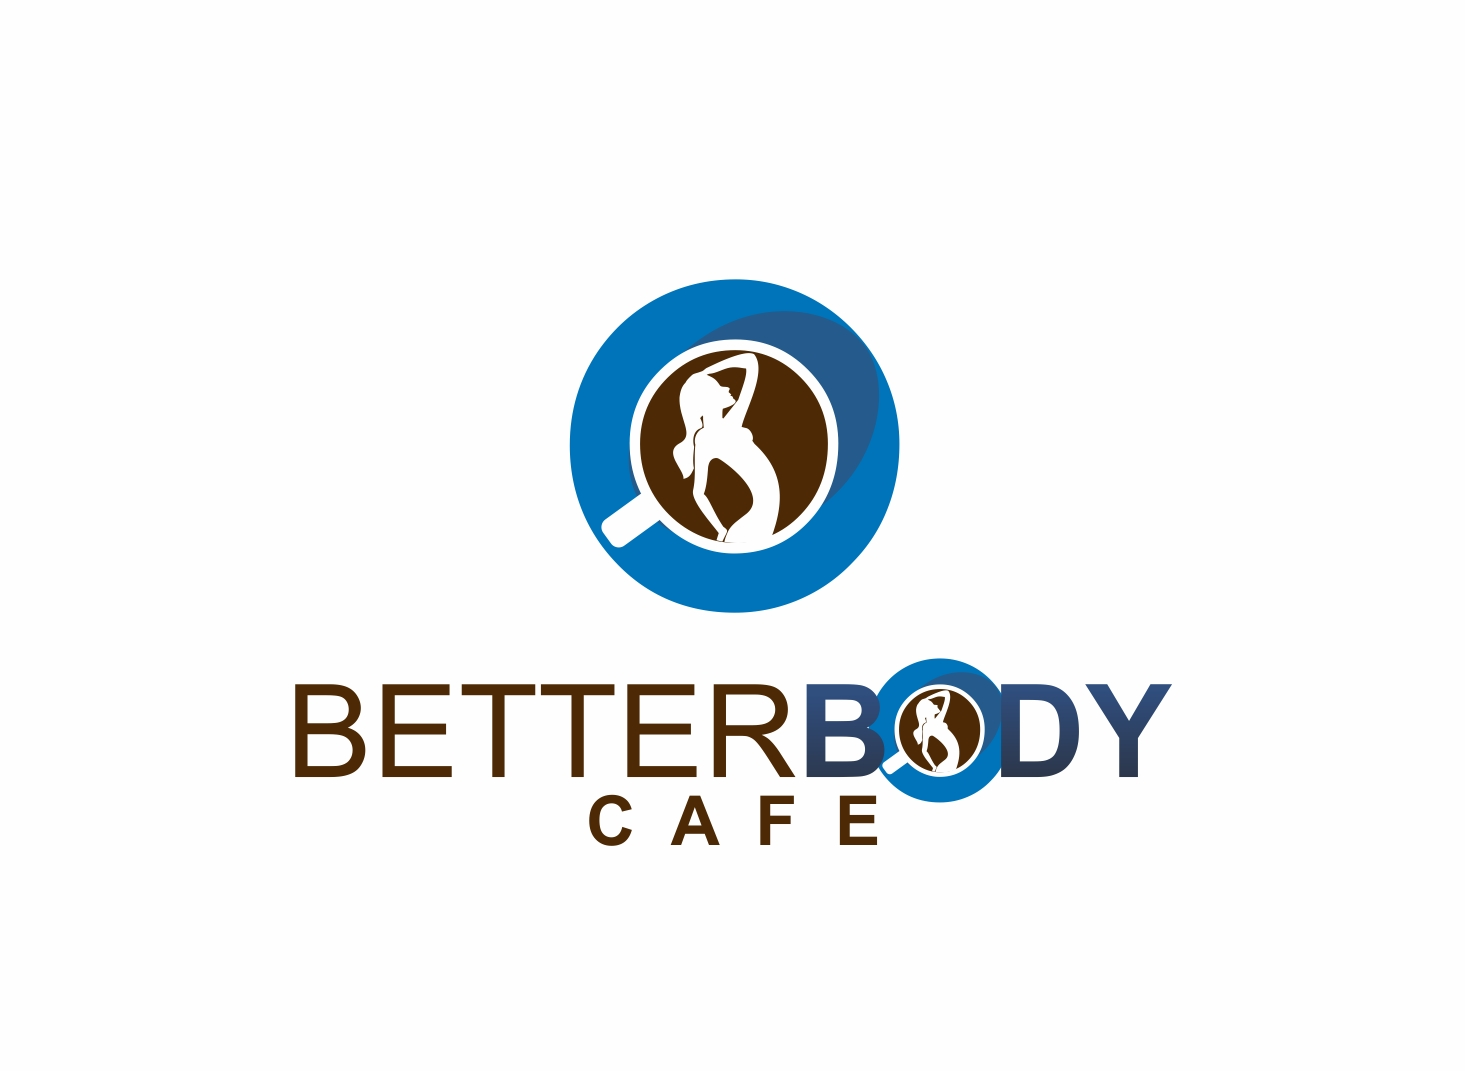 Logo Design by Zdravko Krulj - Entry No. 67 in the Logo Design Contest New Logo Design for Better Body Cafe.